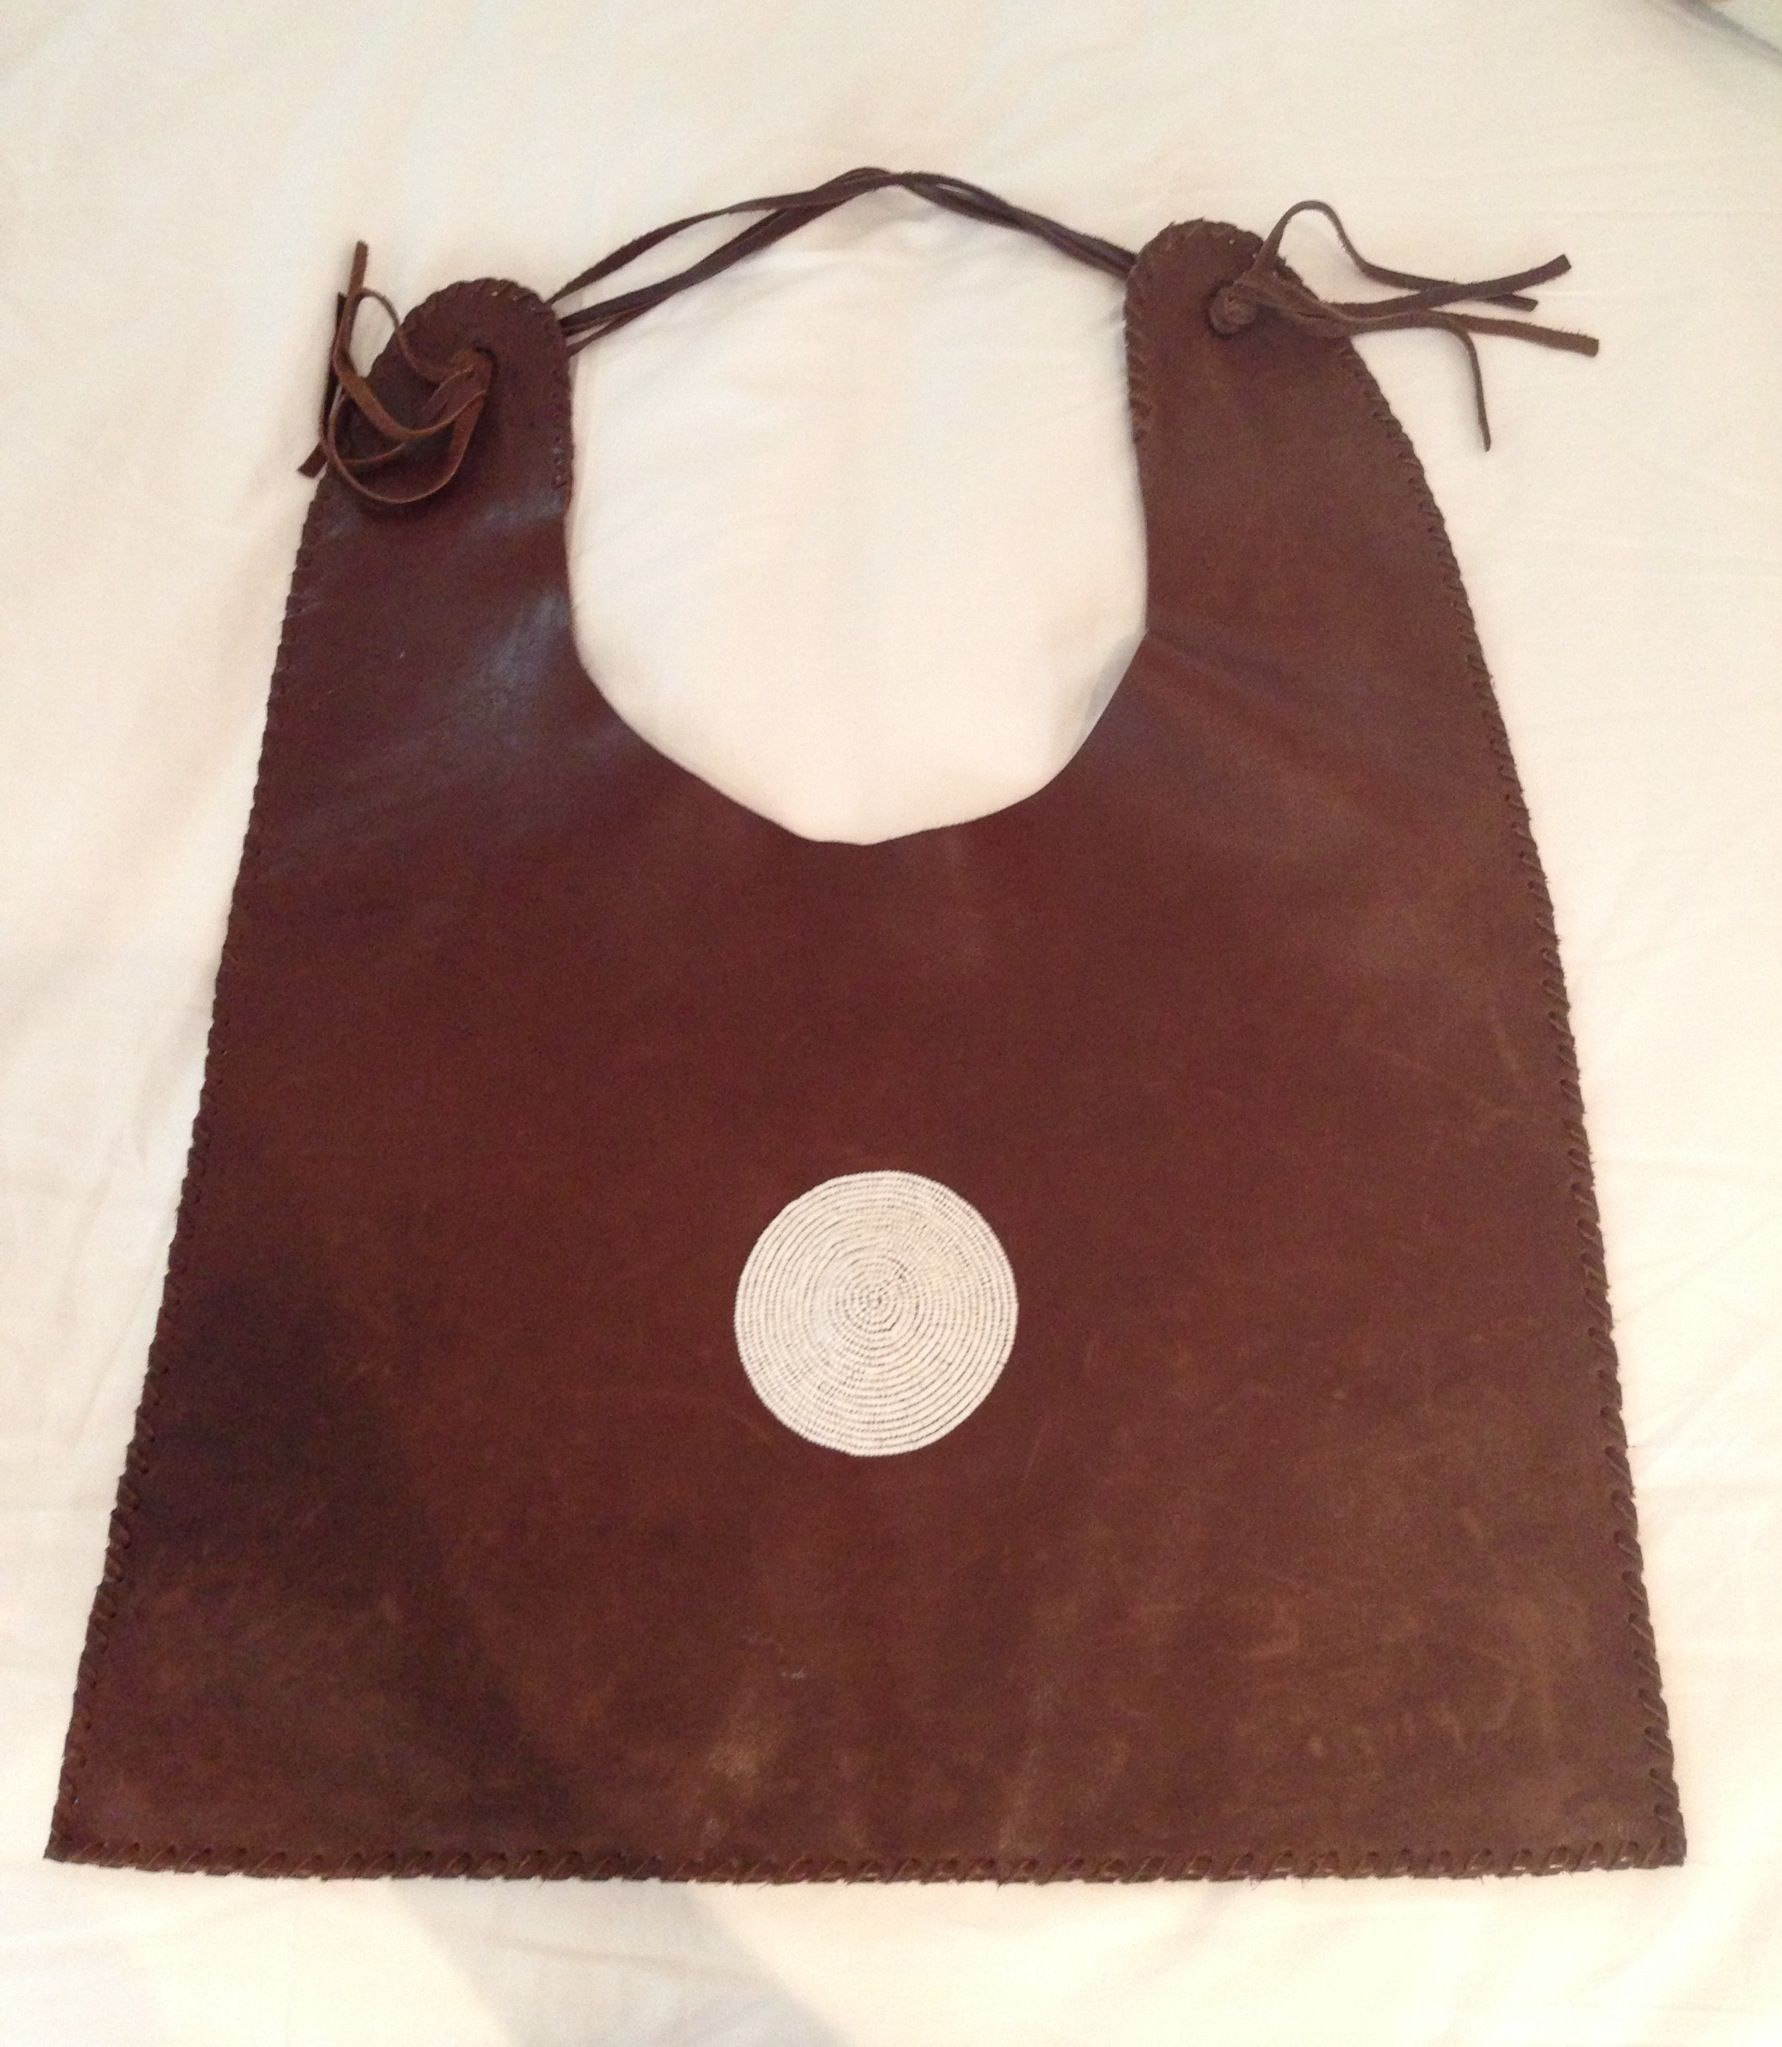 Messenger bags I am importing from Africa... Beyond chic